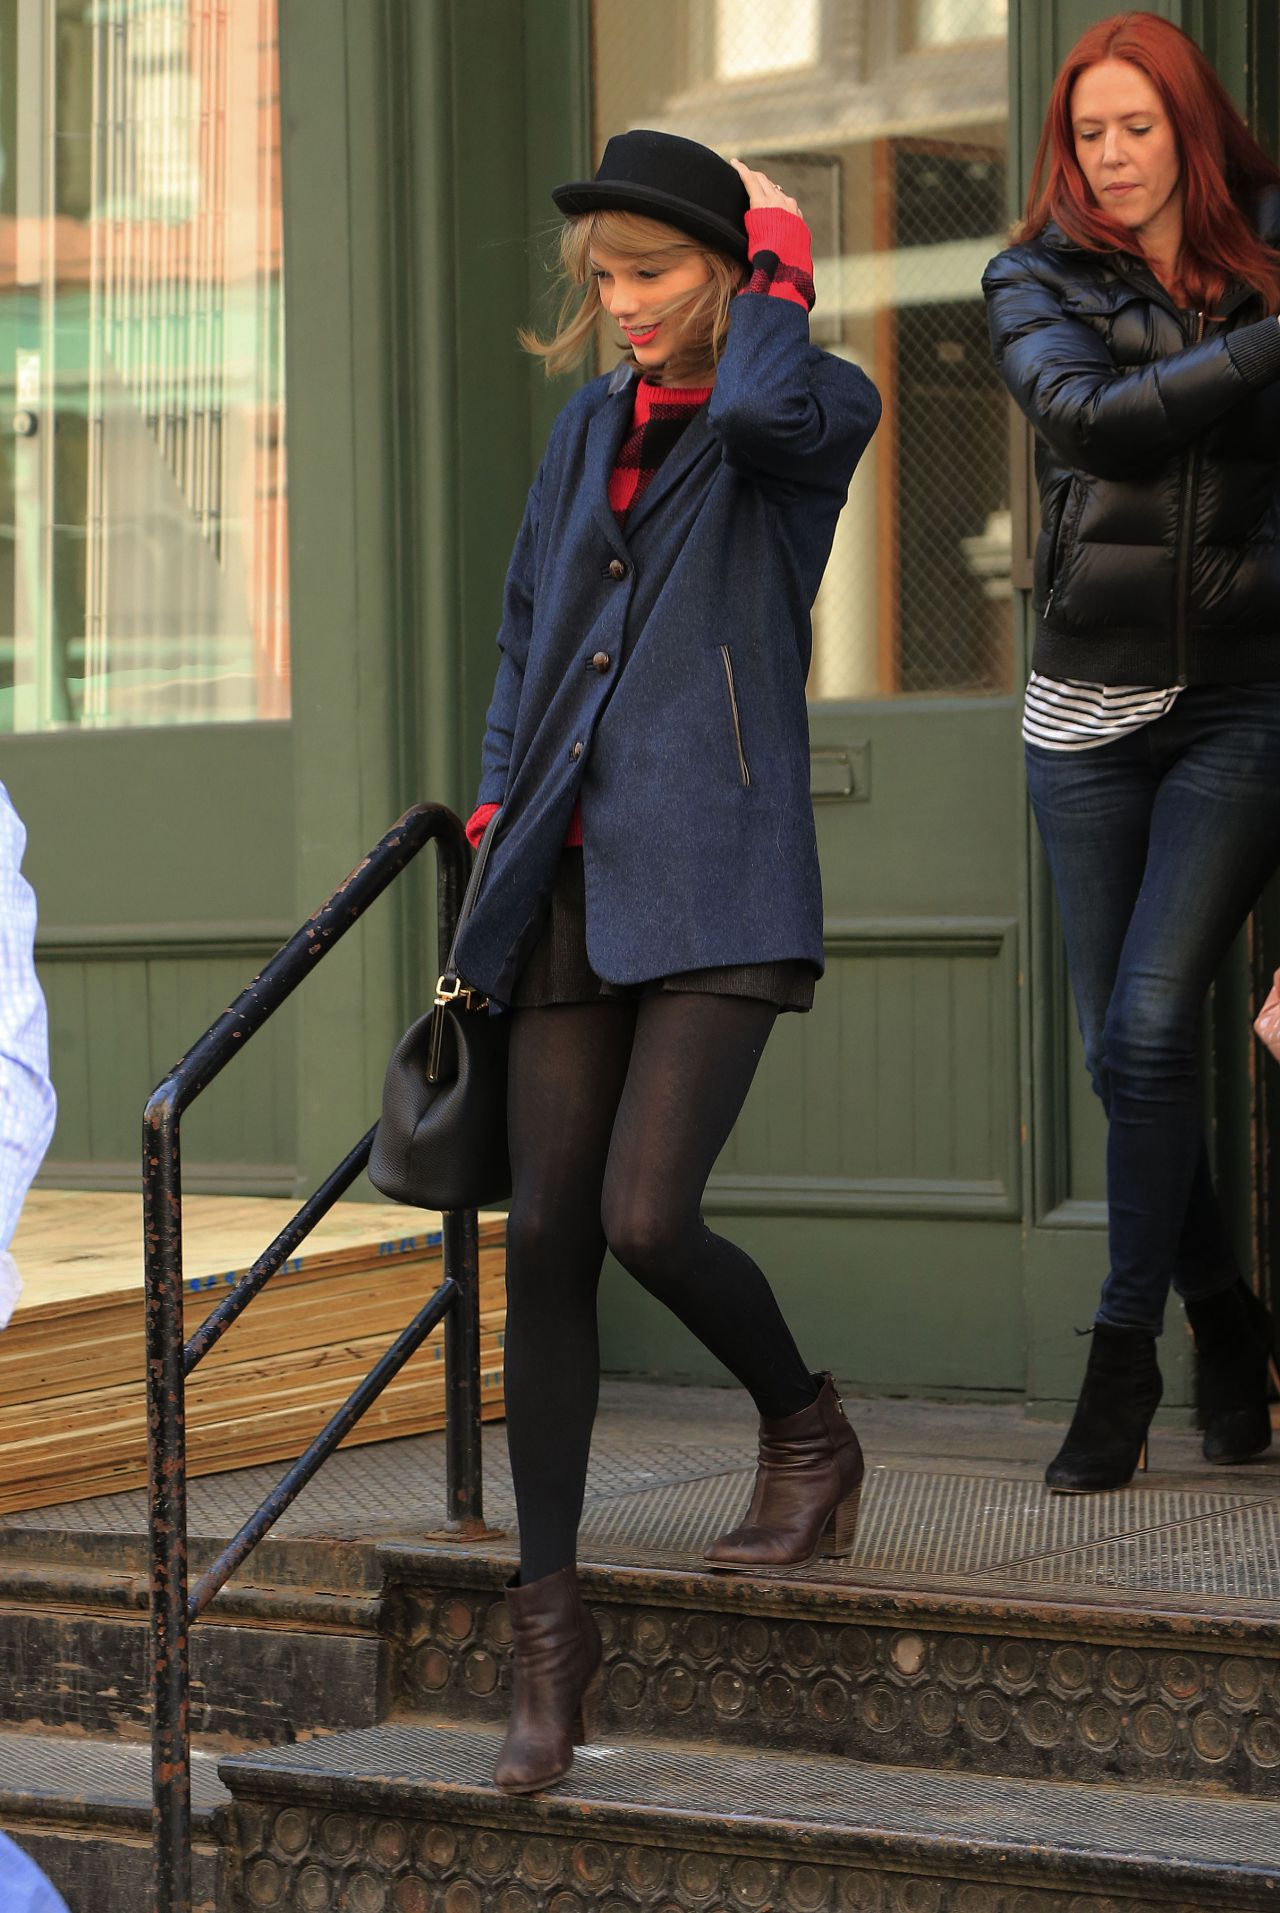 Taylor Swift Street Style - Out in NYC - March 2014